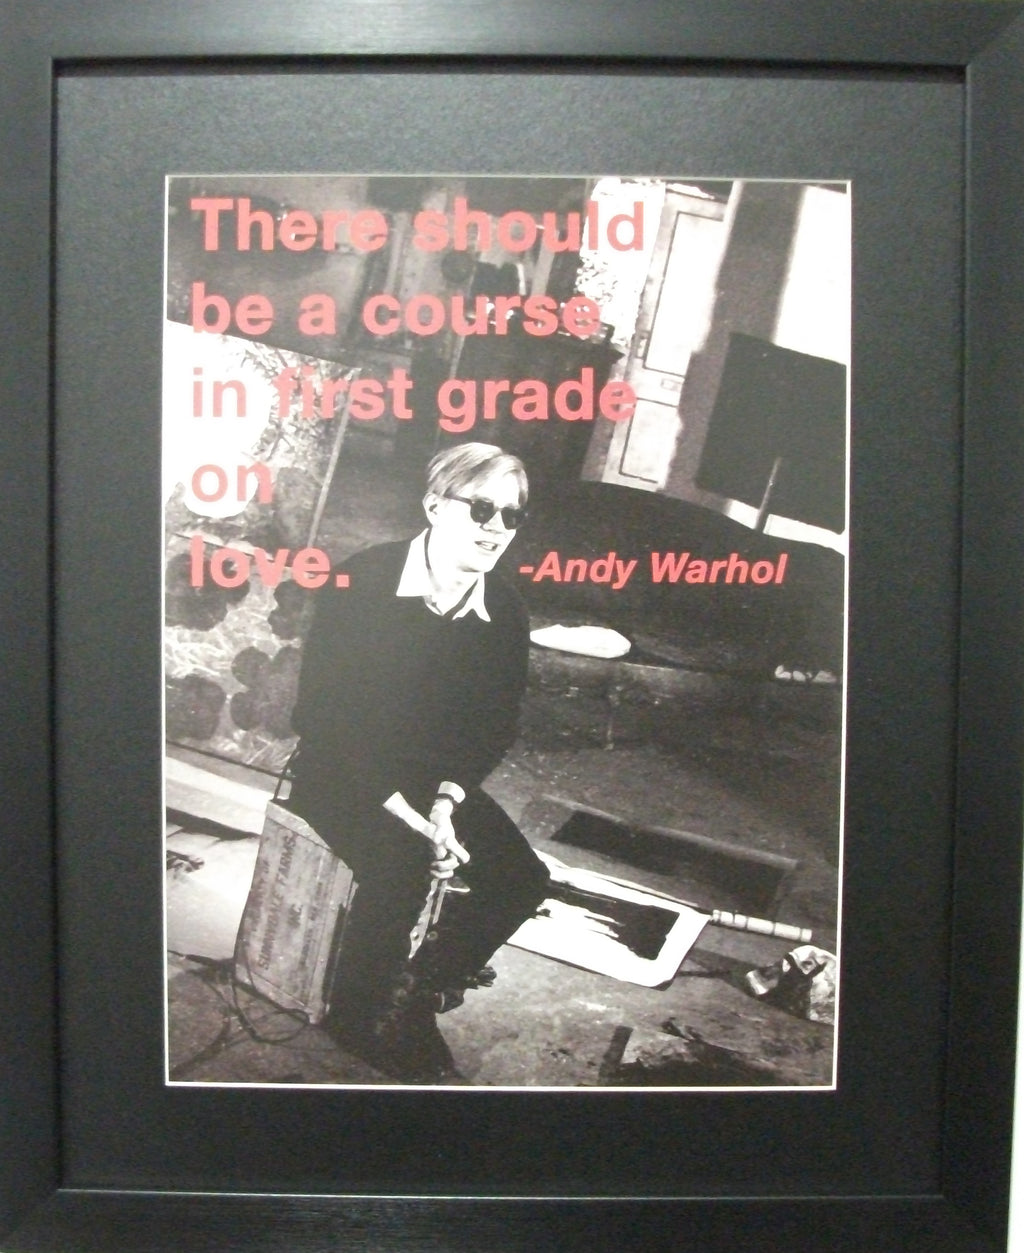 Andy Warhol-There should be a course in first grade on love